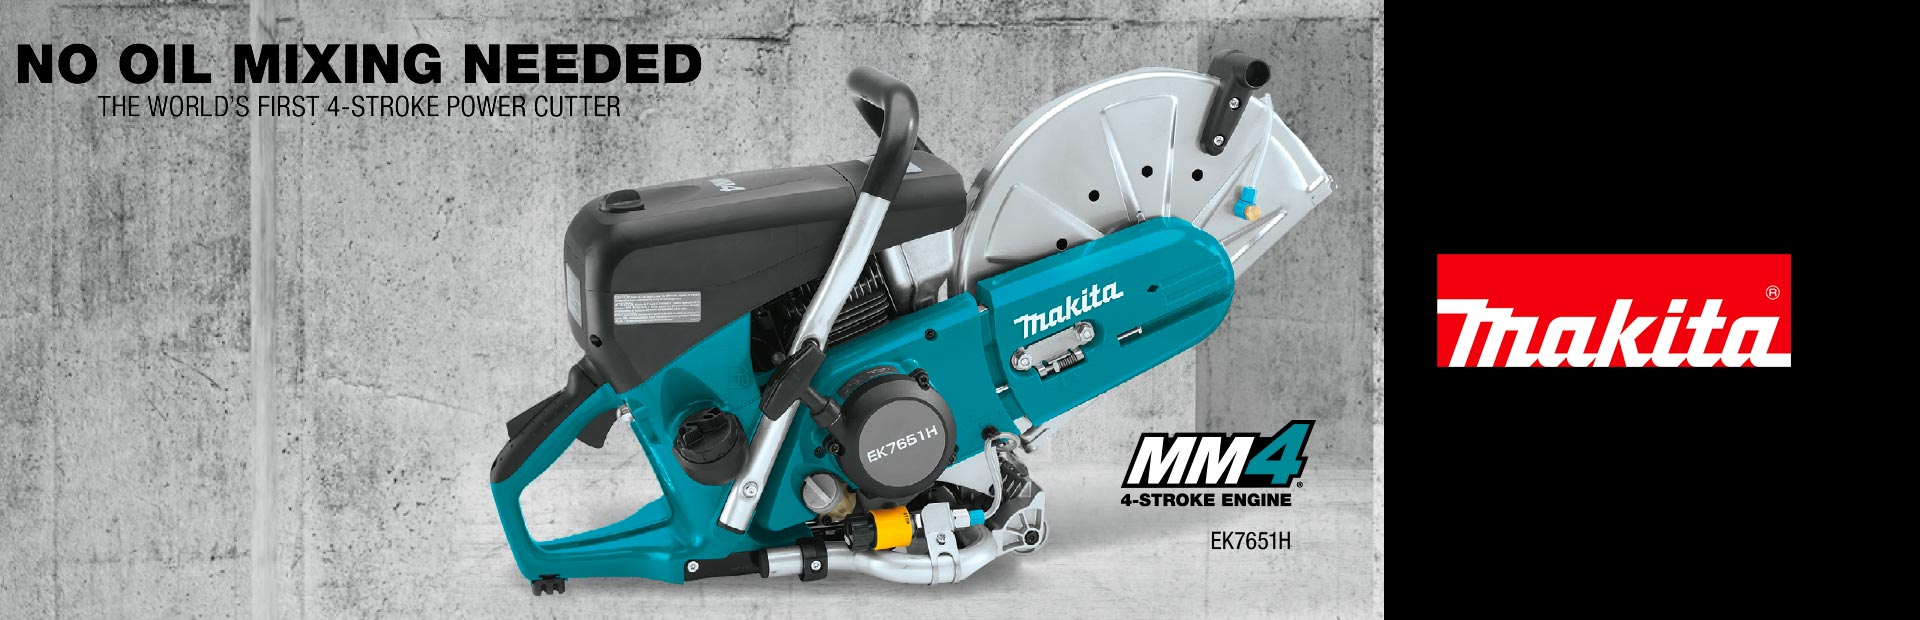 Makita: No Oil Mixing Needed